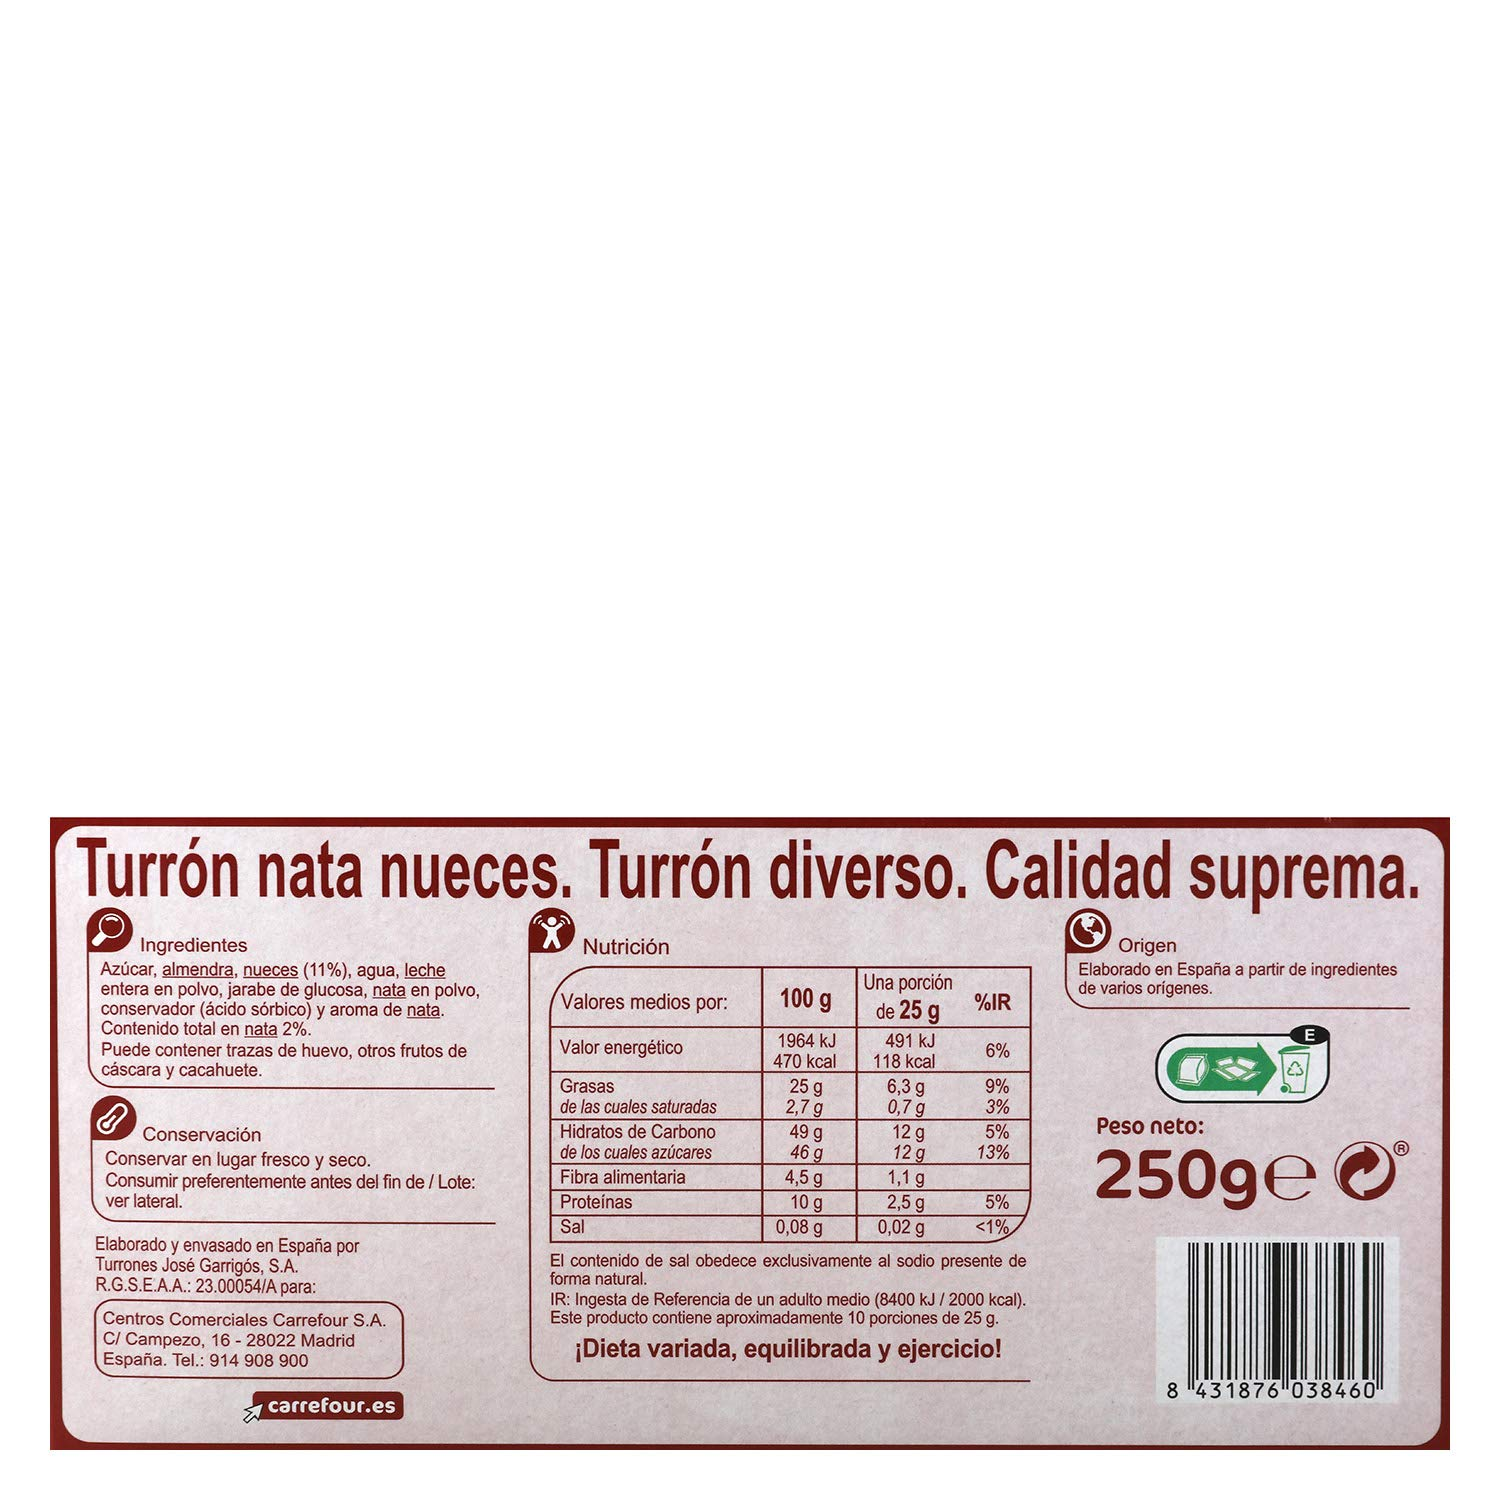 Carrefour Nuts & Cream Spanish Nougat - 4 Pack - Made in Spain - Candy & Chococolate - Traditional & International Sweets - Gluten-Free - Turron: ...